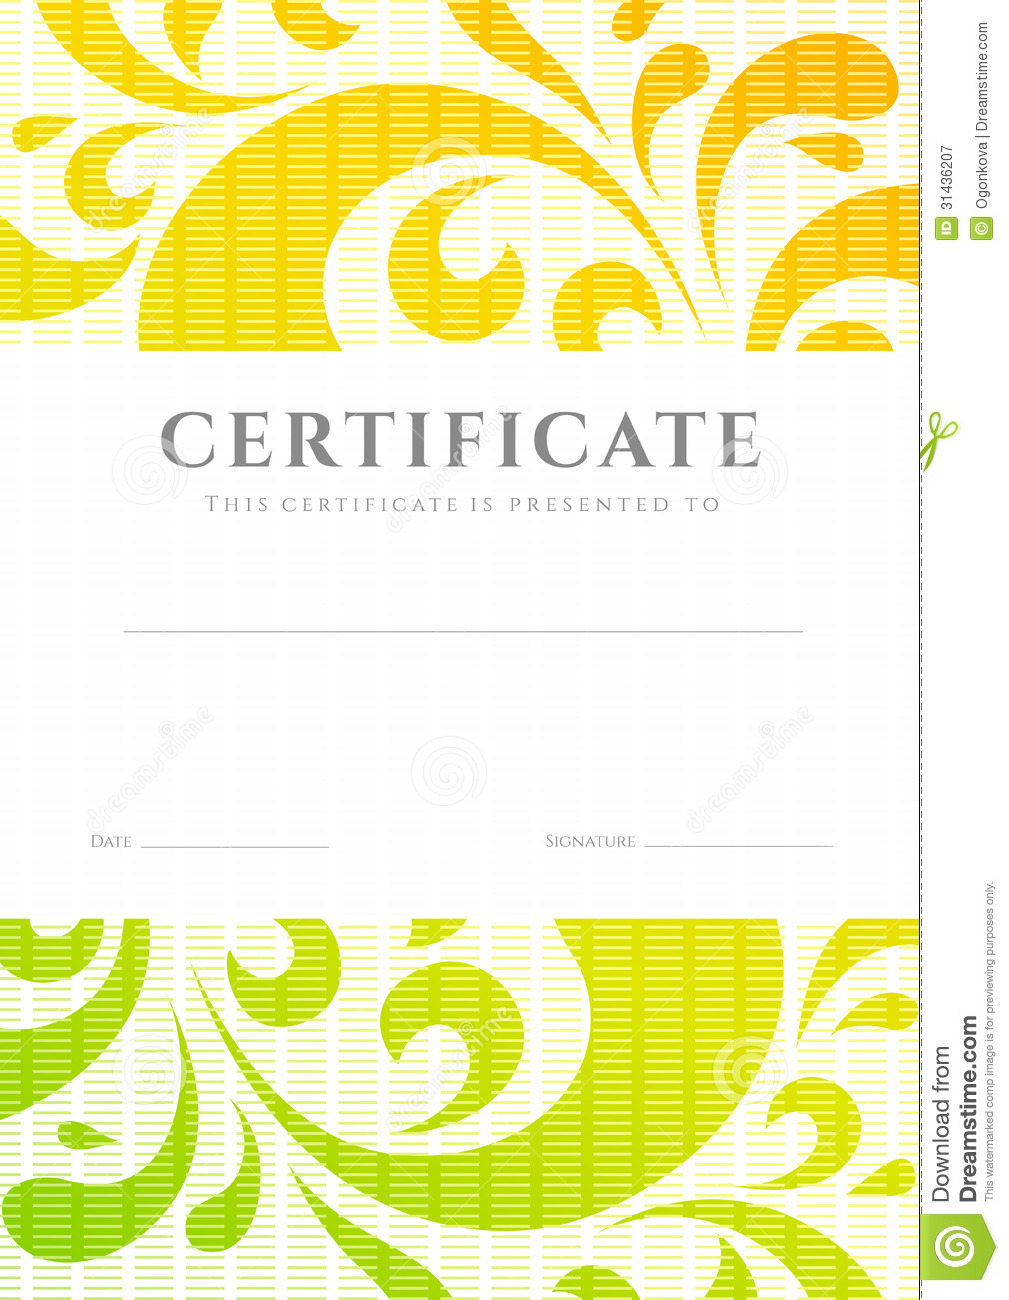 Certificate / Diploma Template. Scroll Pattern Stock Vector - Image: 31436207